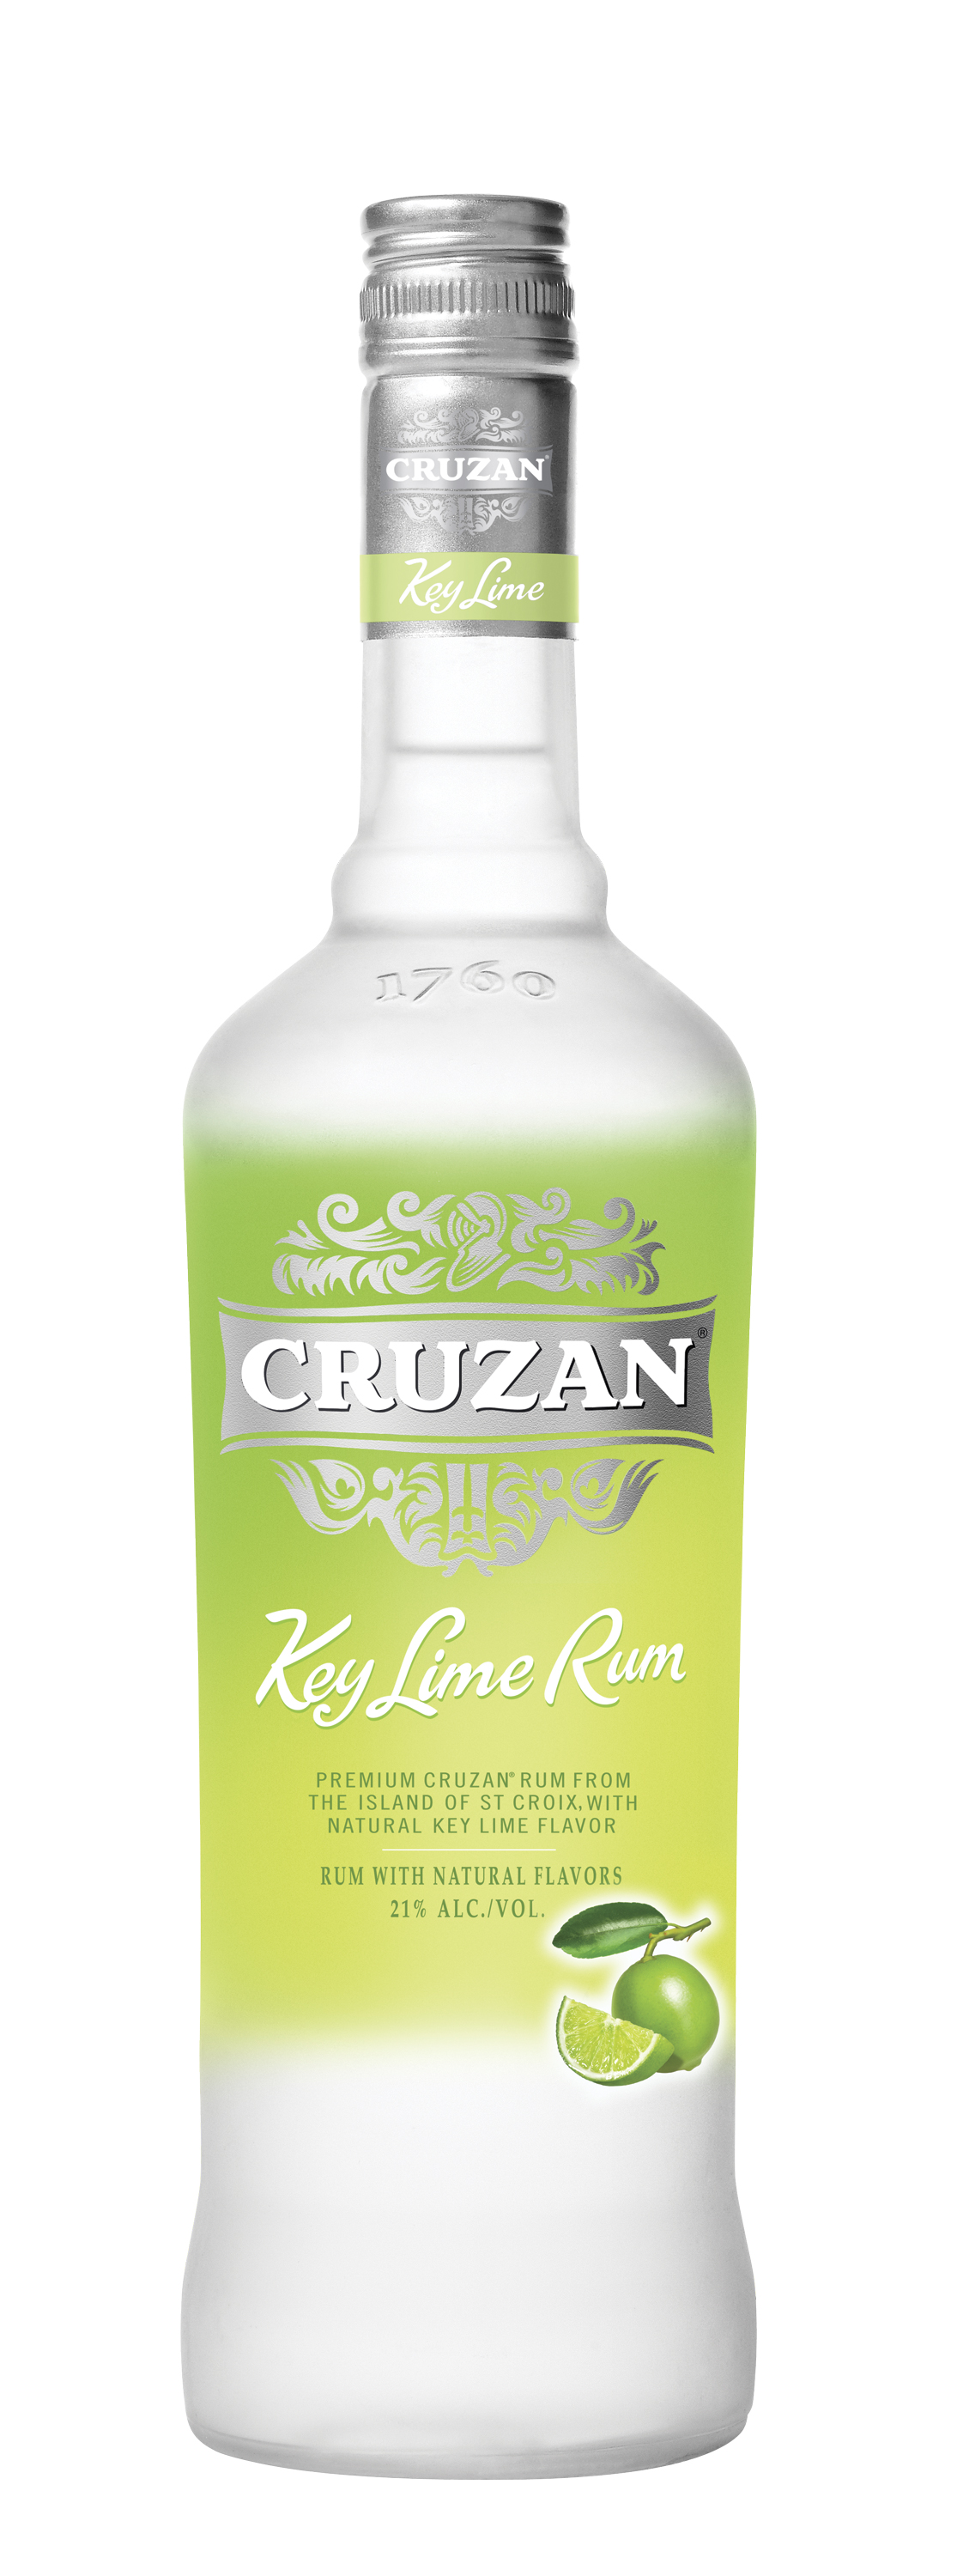 Cruzan(r) Key Lime Rum Bottle